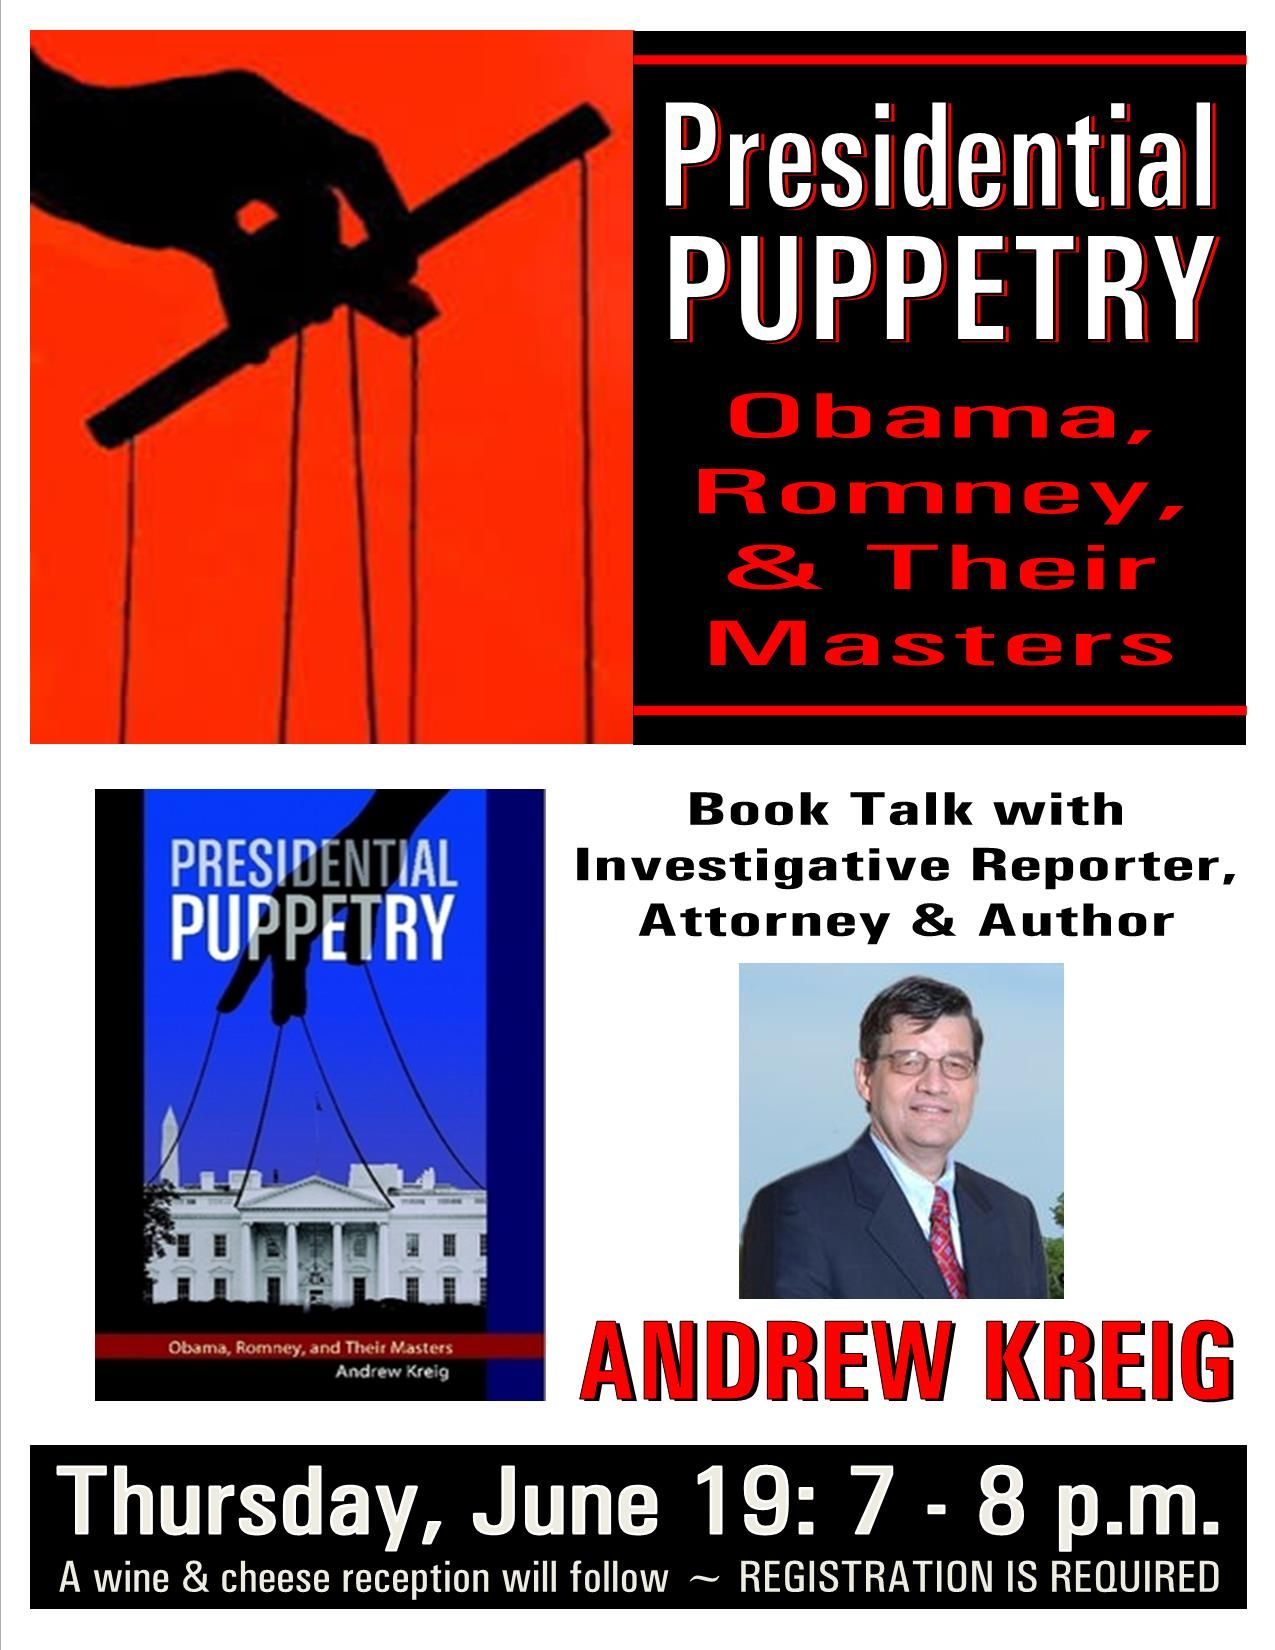 'Presidential Puppetry' Author Speaks on NSA in Litchfield, CT